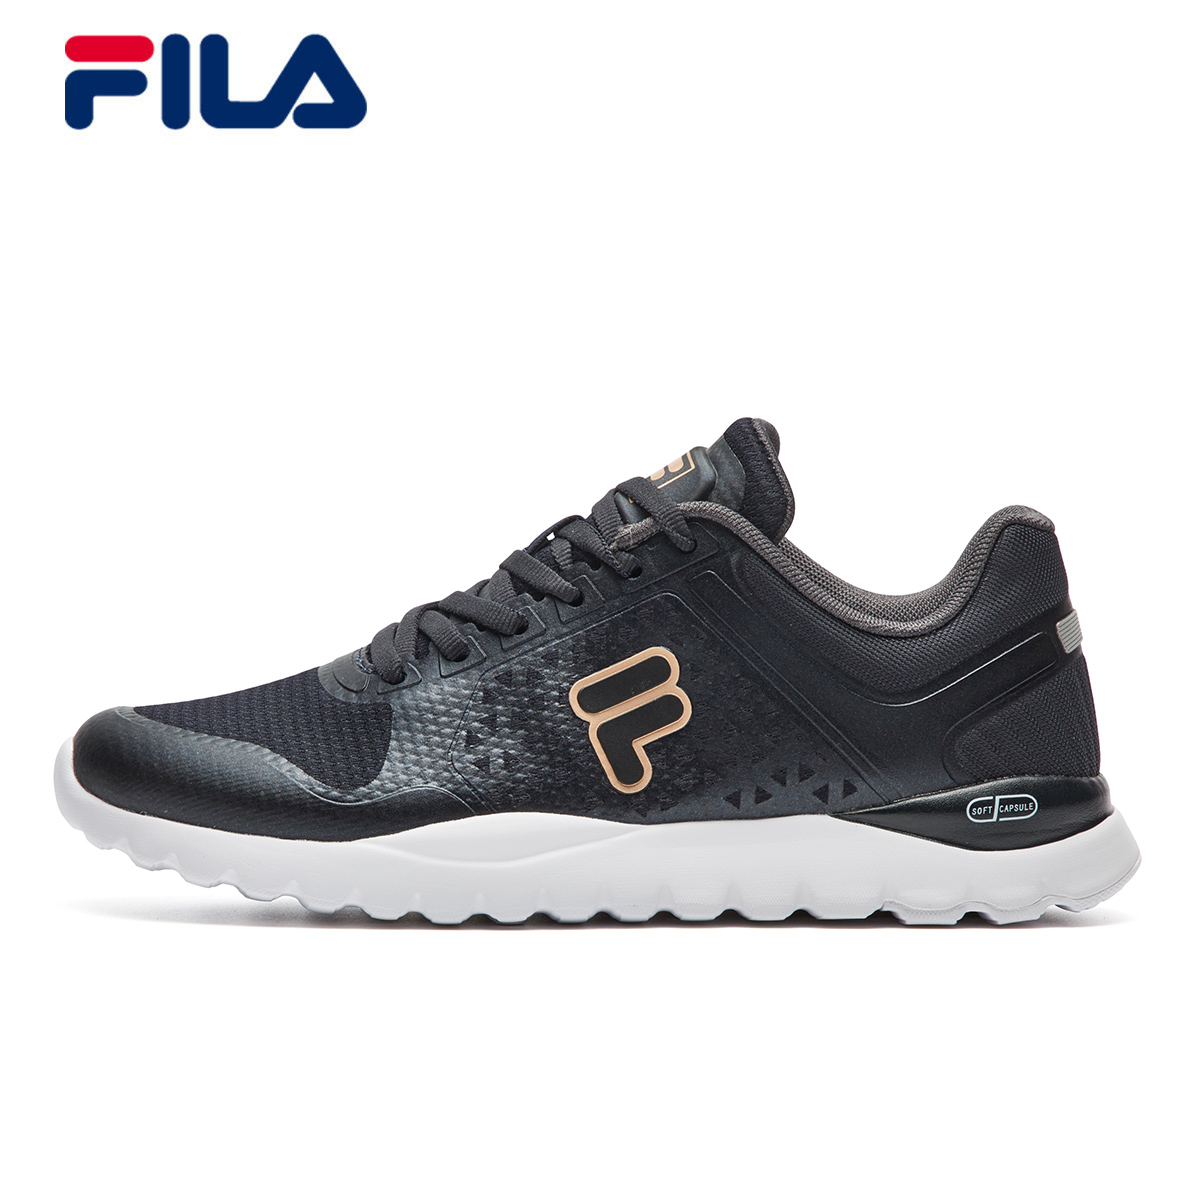 a4bb5e130855 FILA Fei Le shoes 2018 spring new LOGO breathable wear-resistant sports  shoes running shoes training shoes women